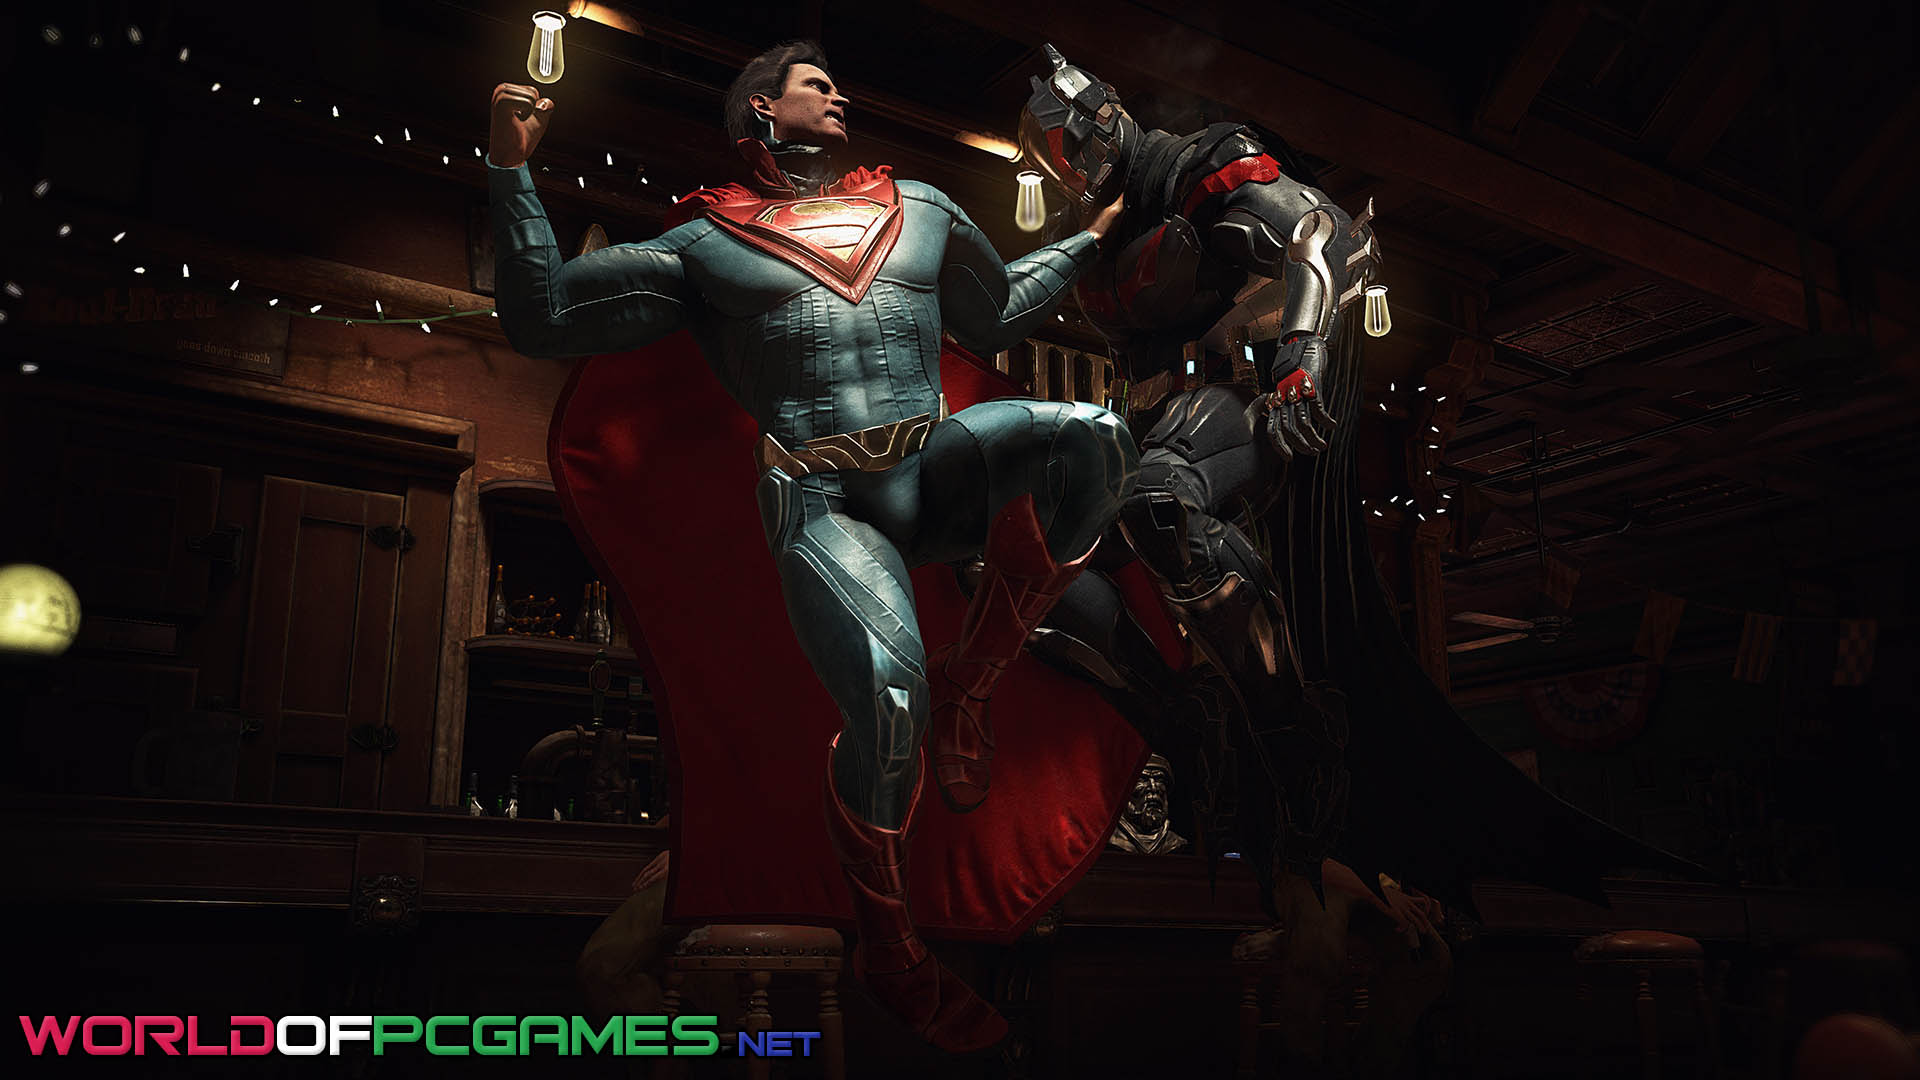 Injustice 2 Repack Free Download By Worldofpcgames.net